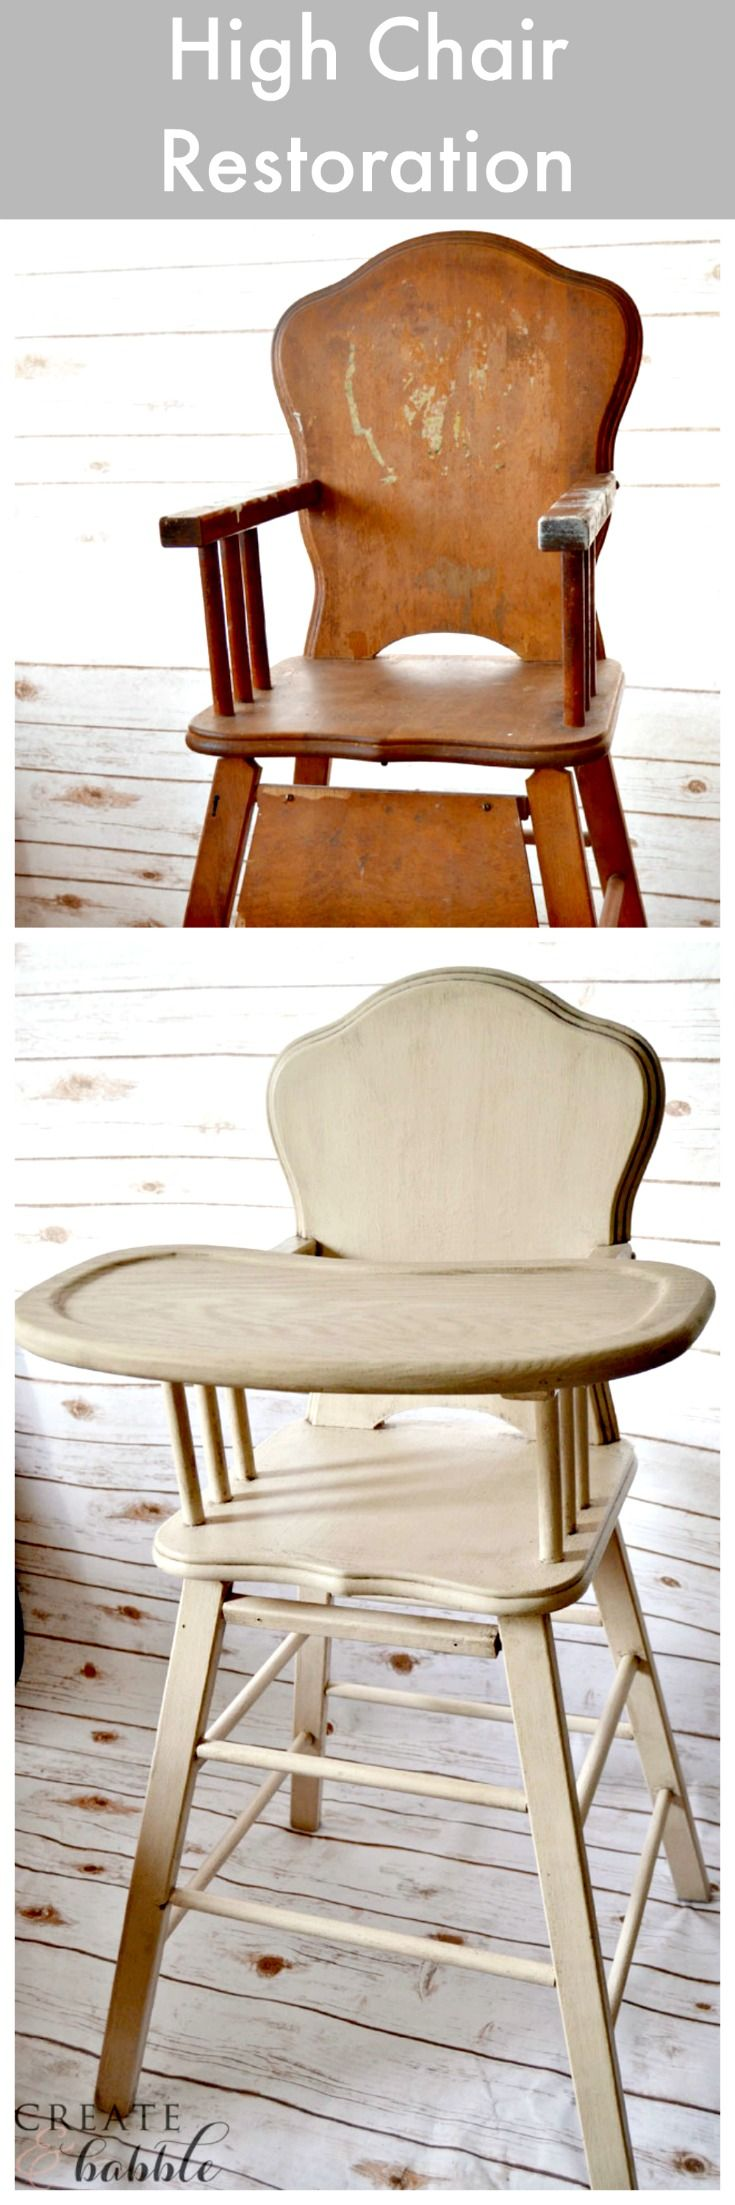 Painted wood high chair - I Restored My Old High Chair With Products From The Amy Howard At Home Line